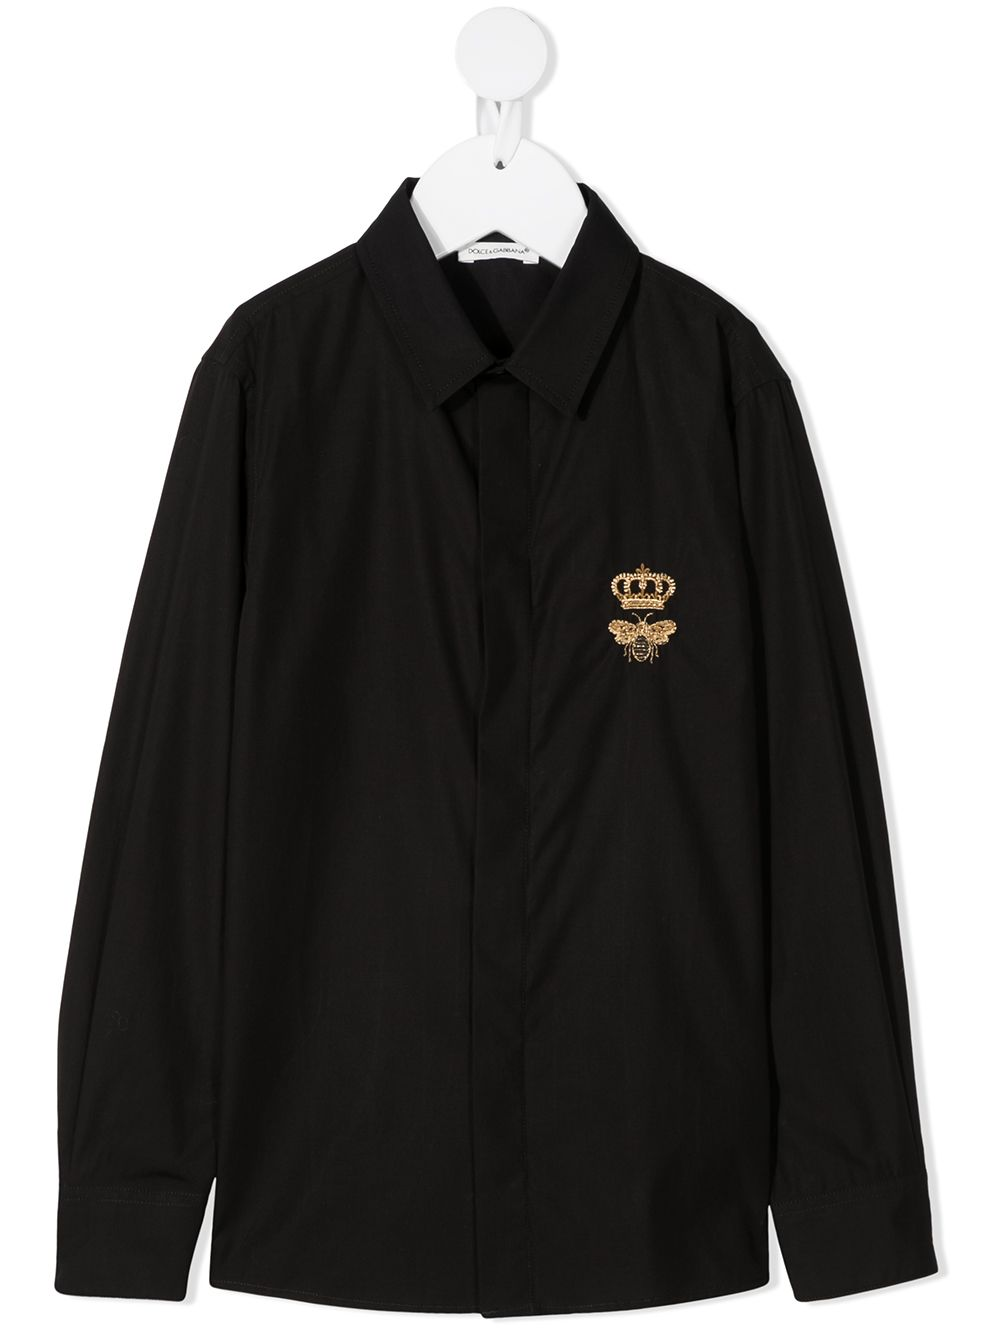 Dolce & Gabbana Kids logo-print long-sleeved shirt - Black von Dolce & Gabbana Kids